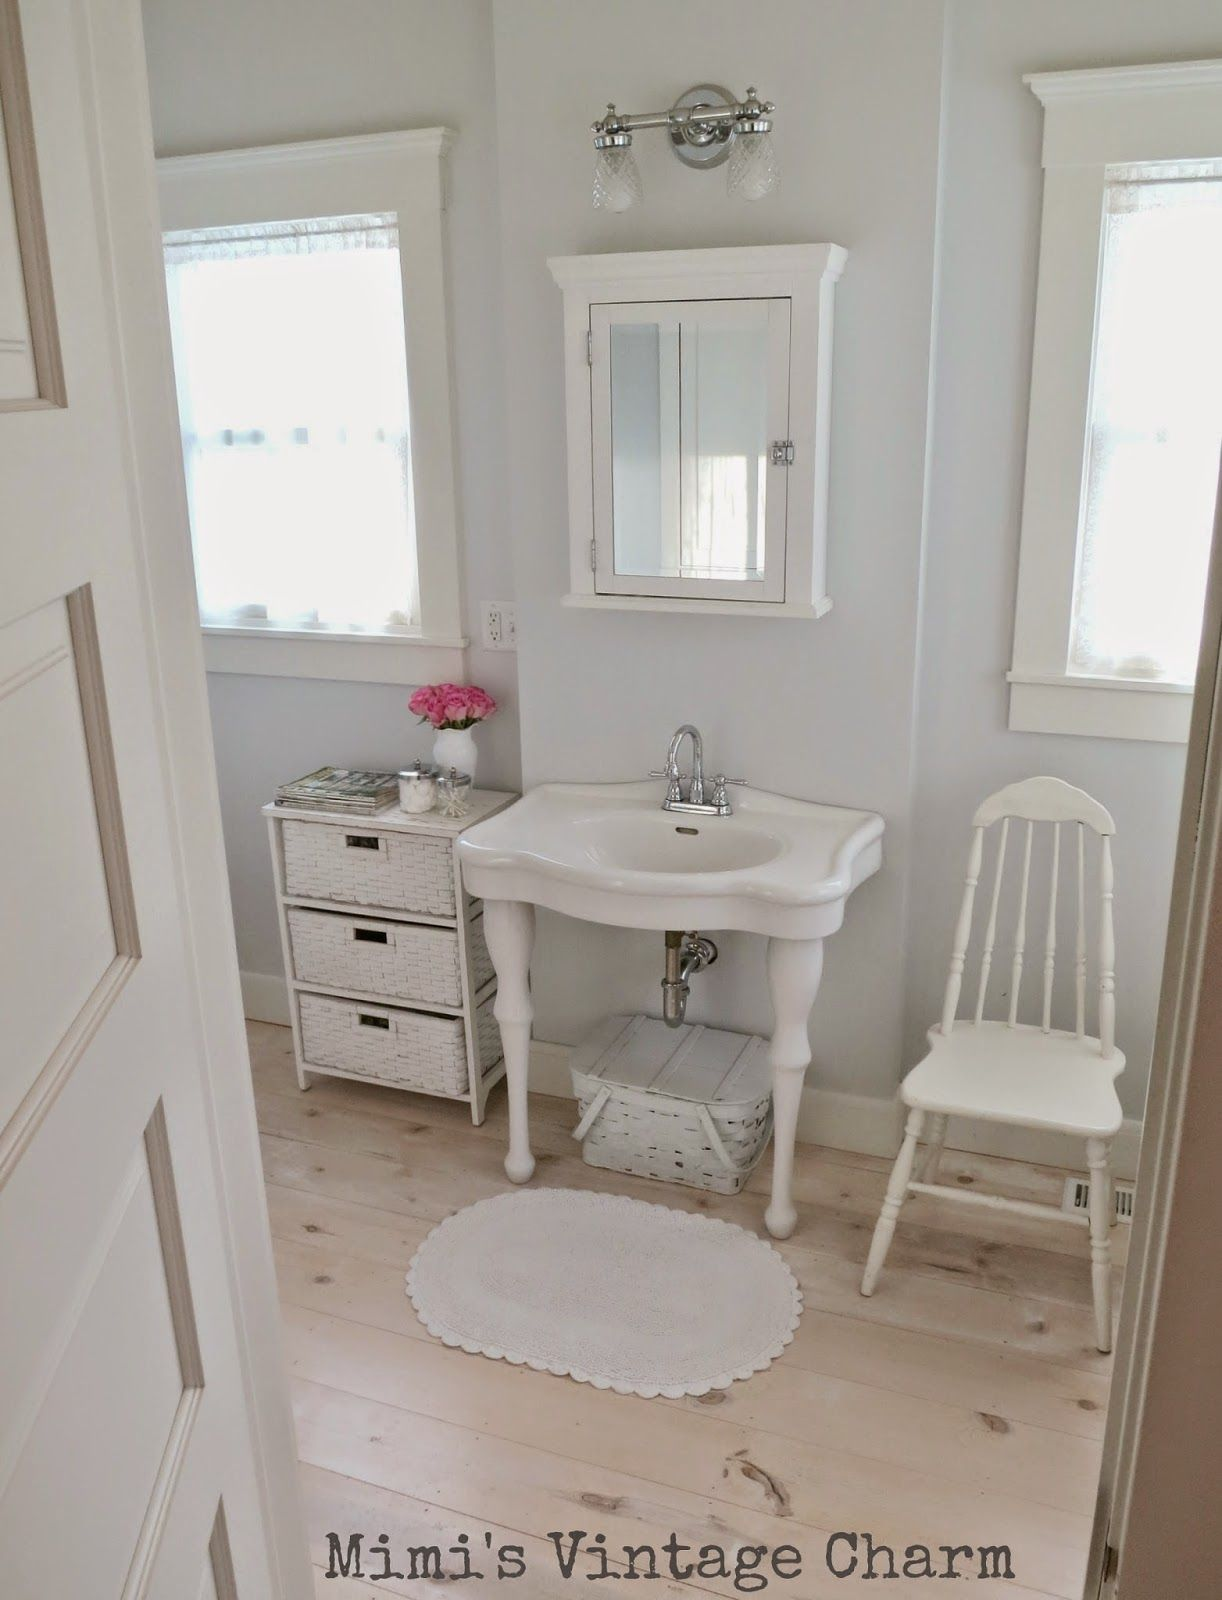 2 Sinks Like This With Wicker Baskets Underneath Train Rack Over Loo For Towels And White Penny Tile Need Recessed Medicine Cabinets Master Bathroom Recessed Medicine Cabinet Home Design Living Room